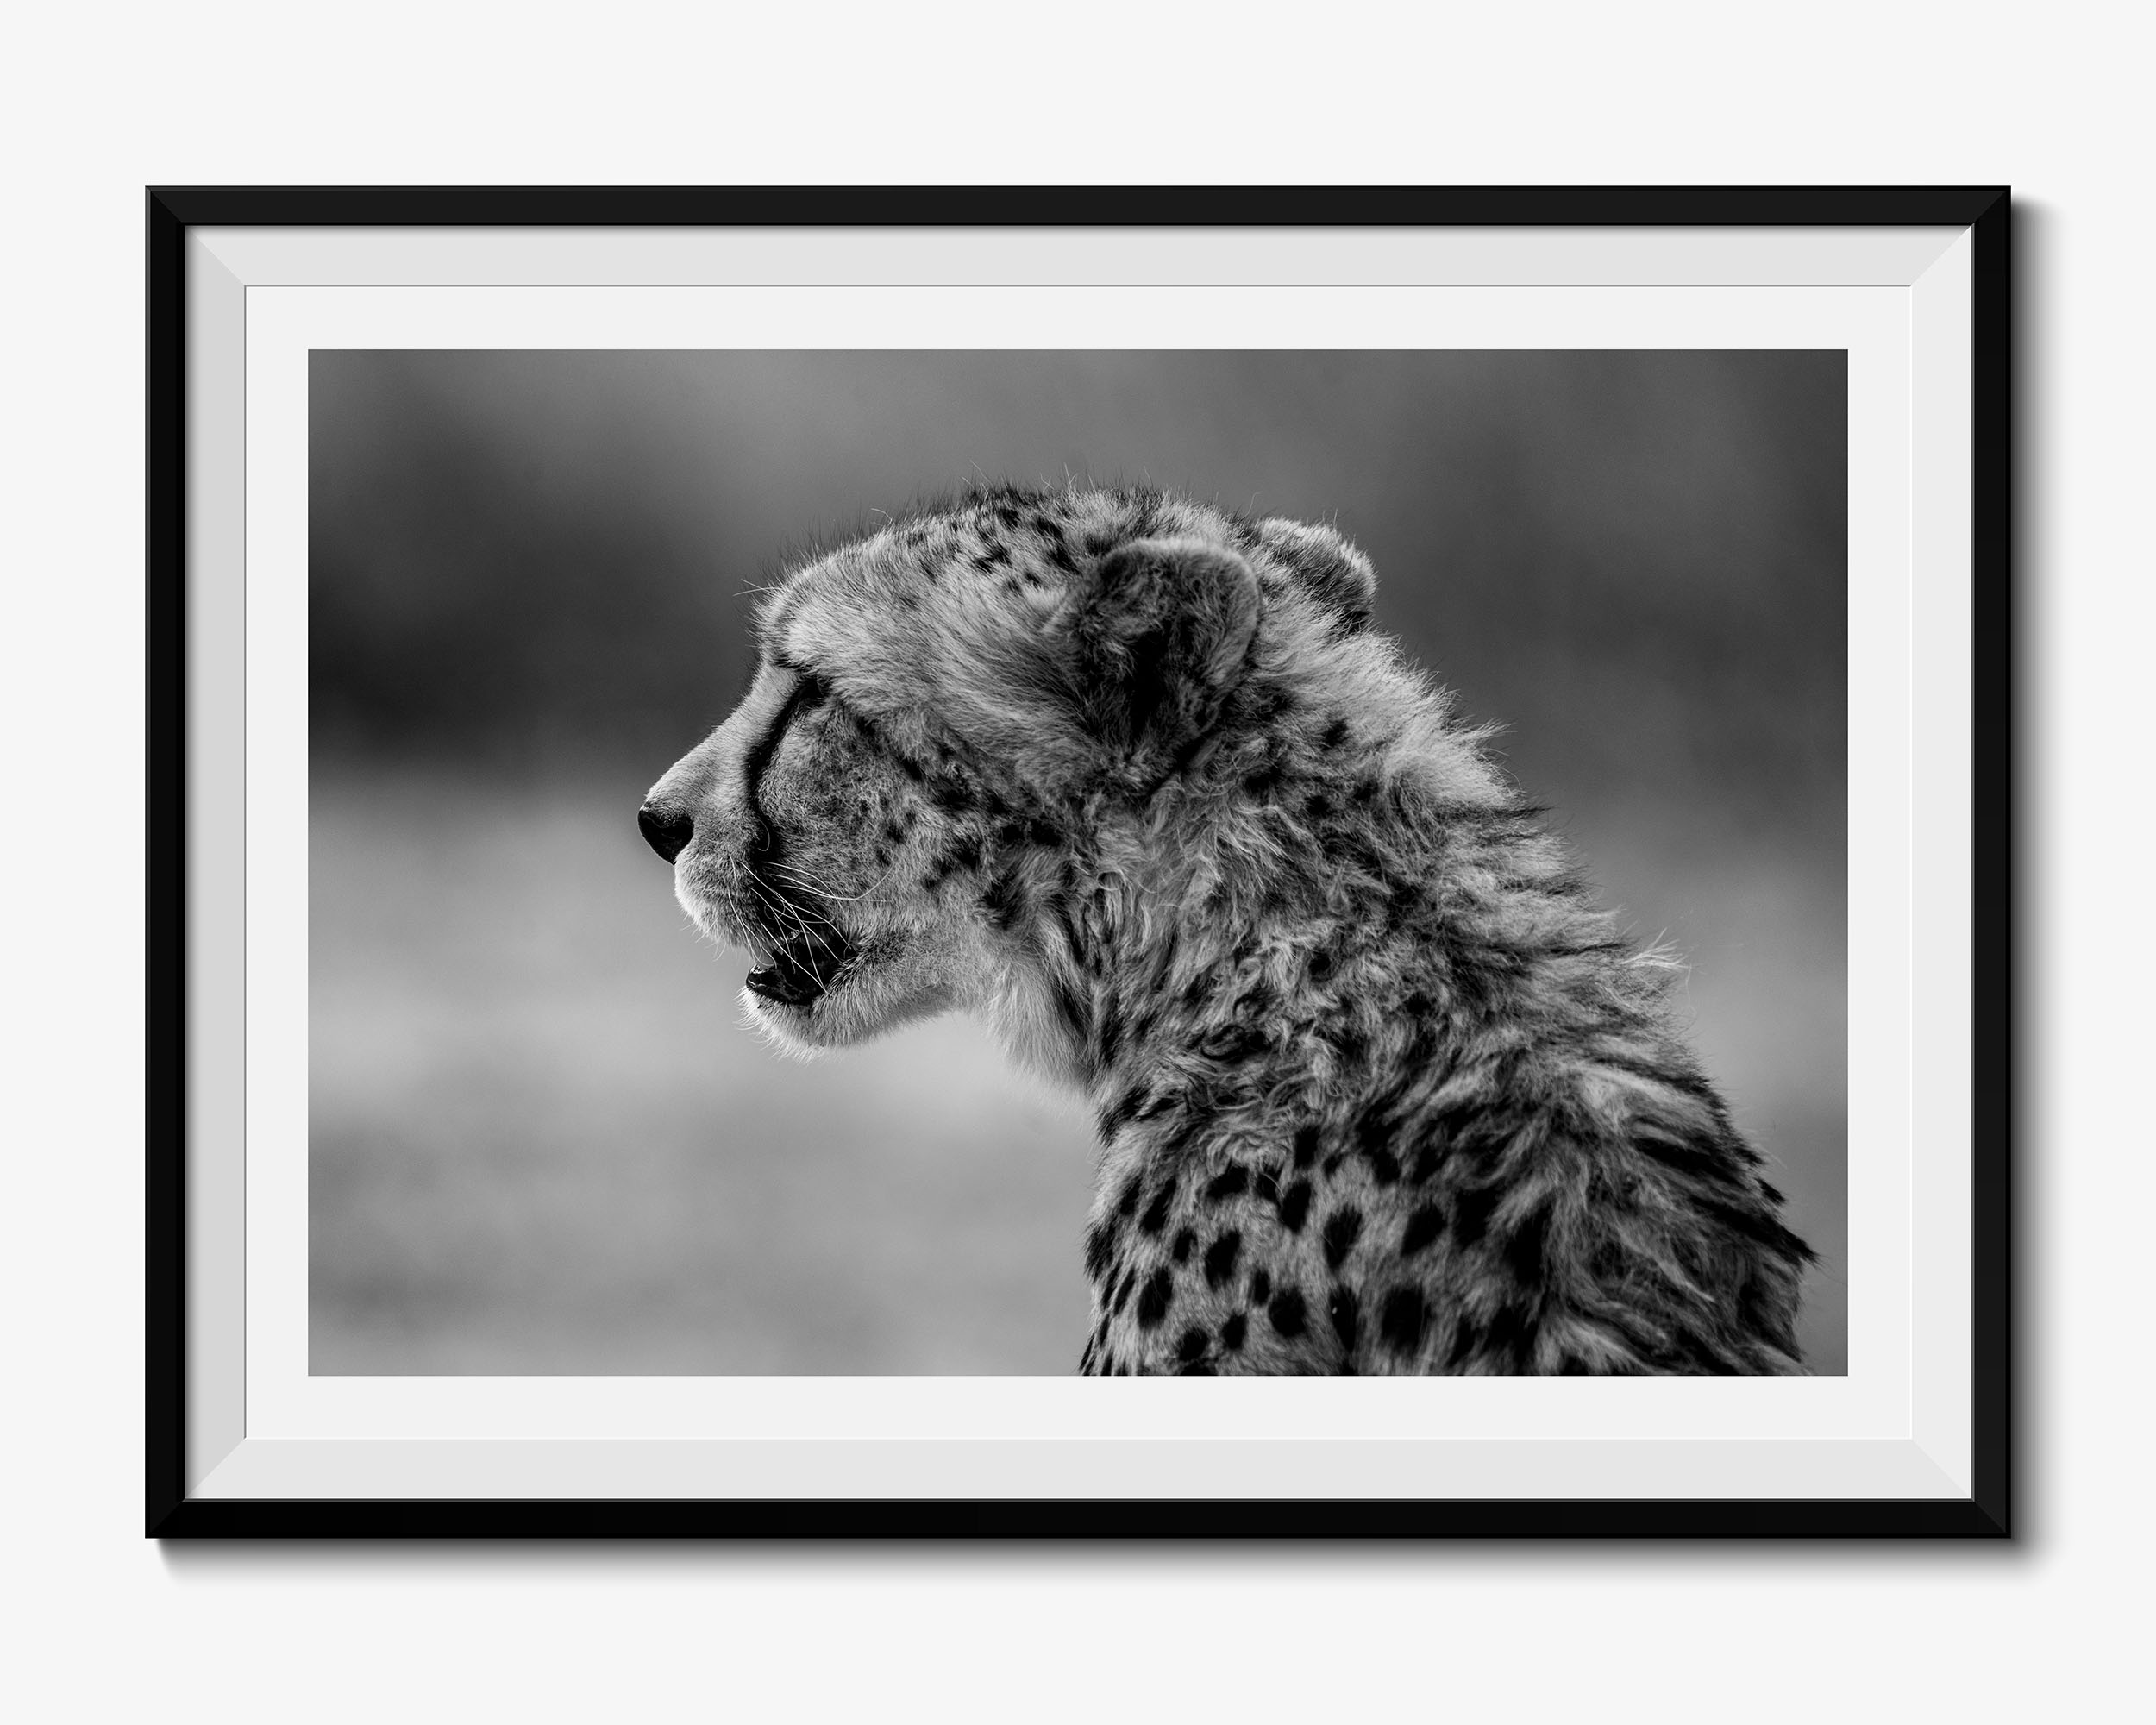 Cheetah - Fine Art Photography Print